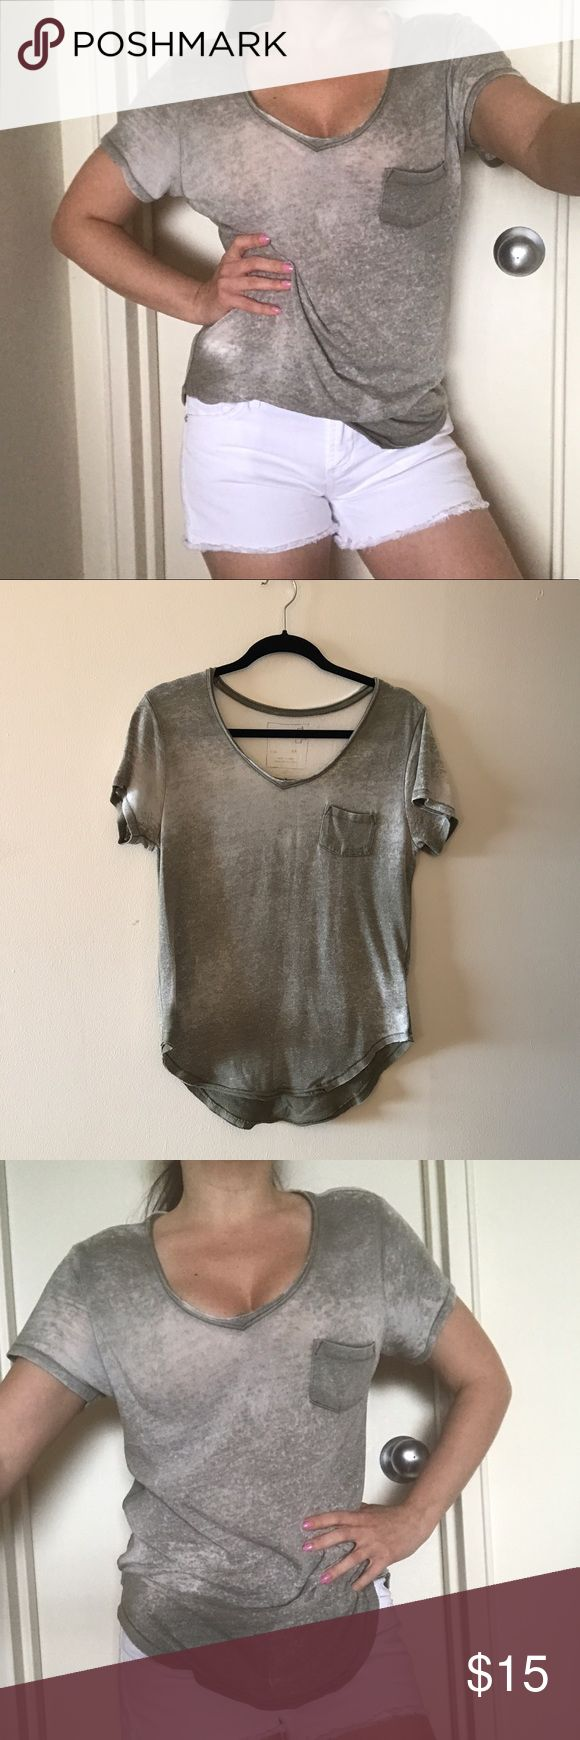 Free people oversized green burnout T-shirt  XS We the free by Free people oversized factory distressed army green burnout T-shirt . Size XS. EUC. 50% Cotton, 50% Polyester. Super soft. Free People Tops Tees - Short Sleeve